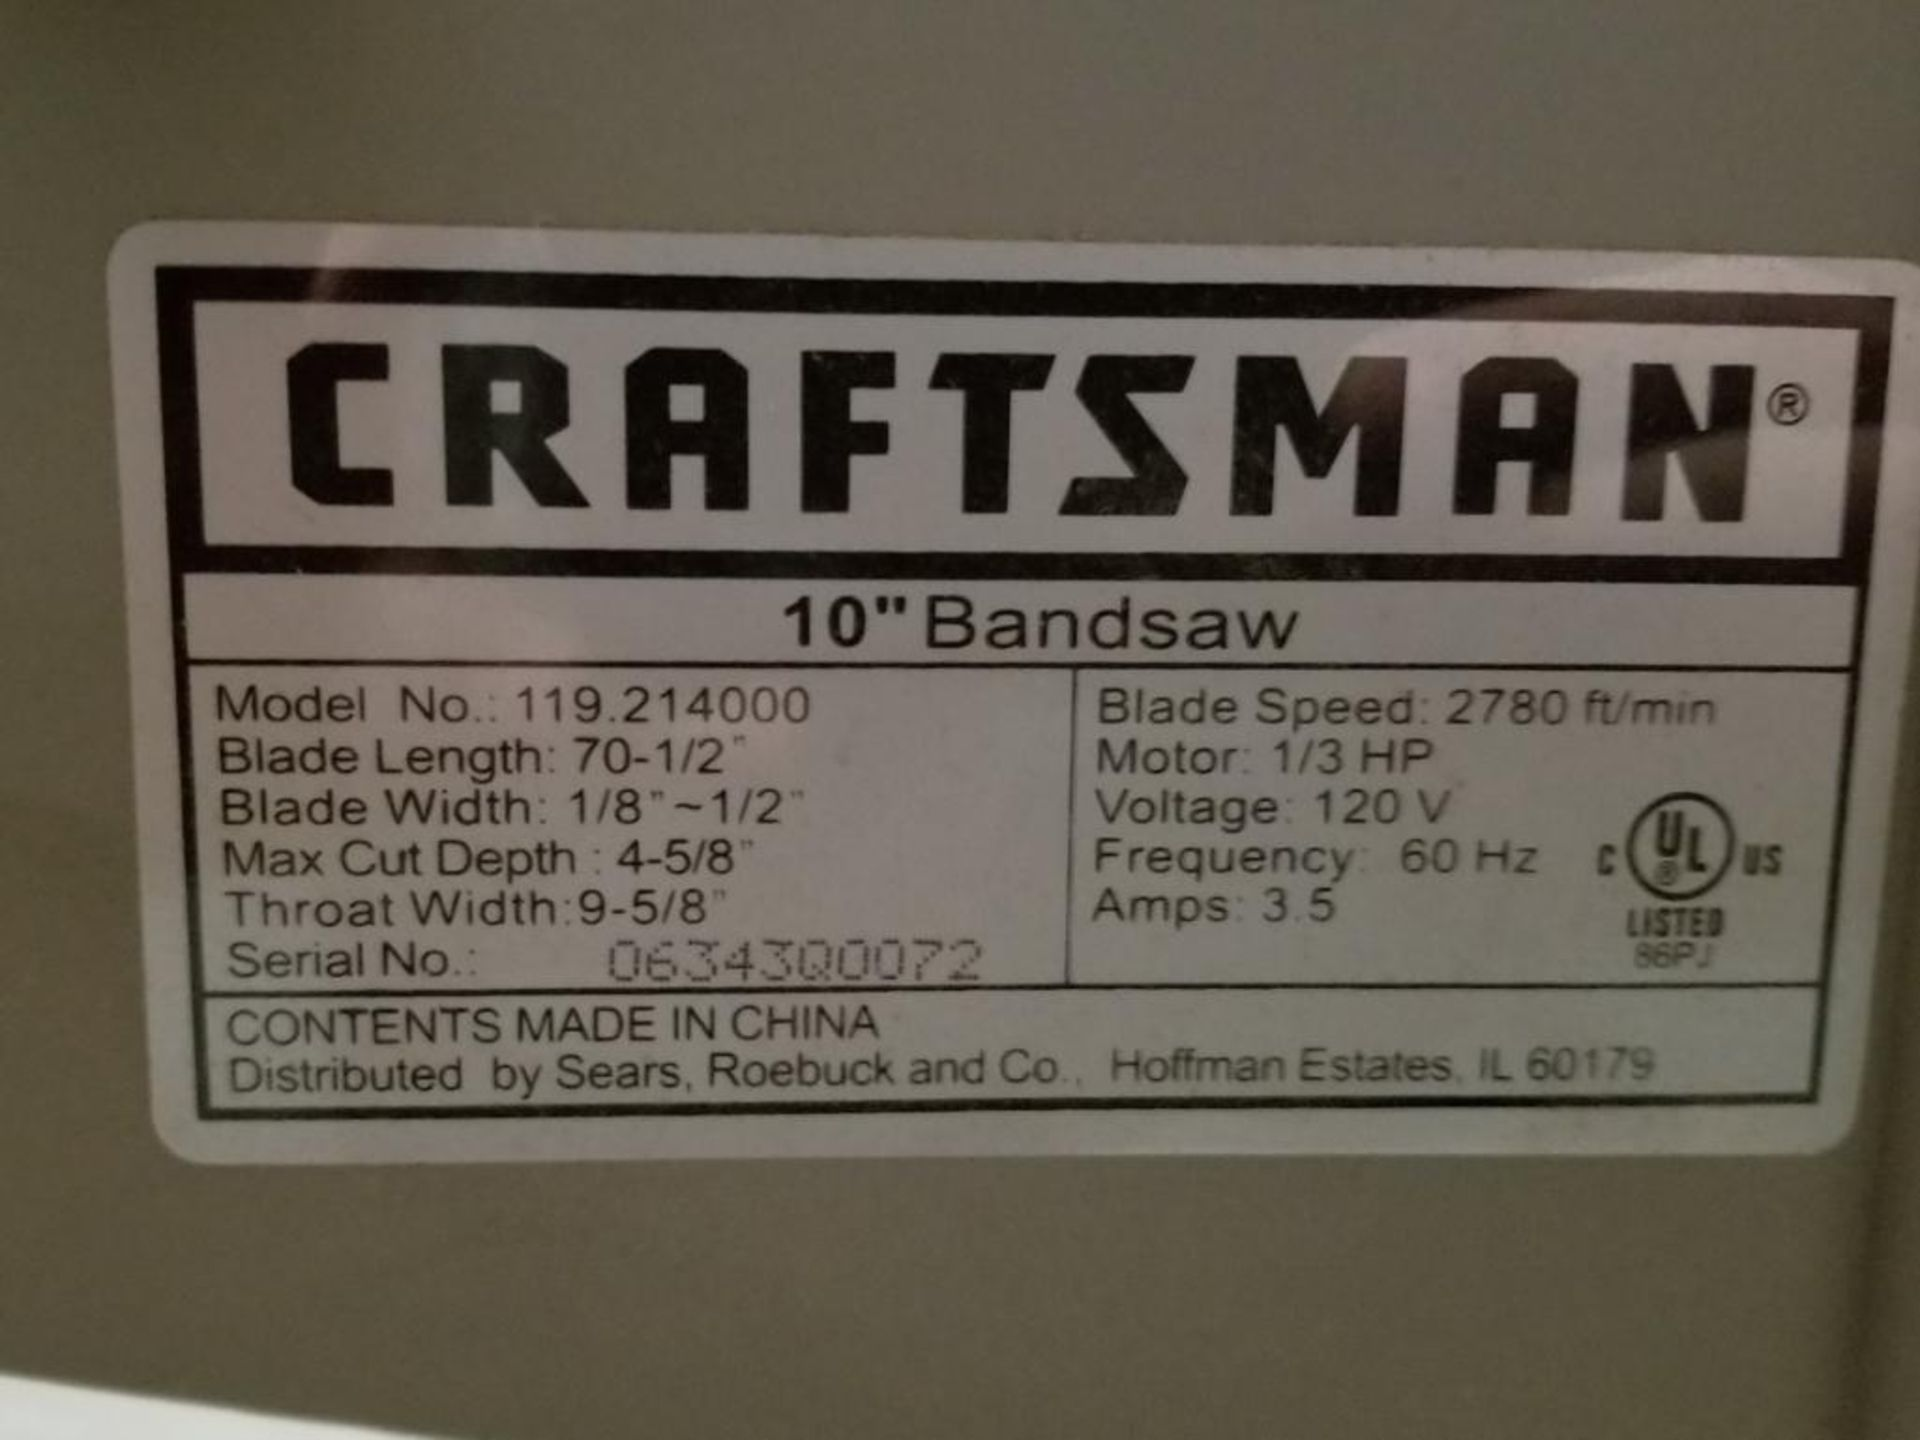 Craftsman Mdl. 119.214000 Band Saw - Image 2 of 2